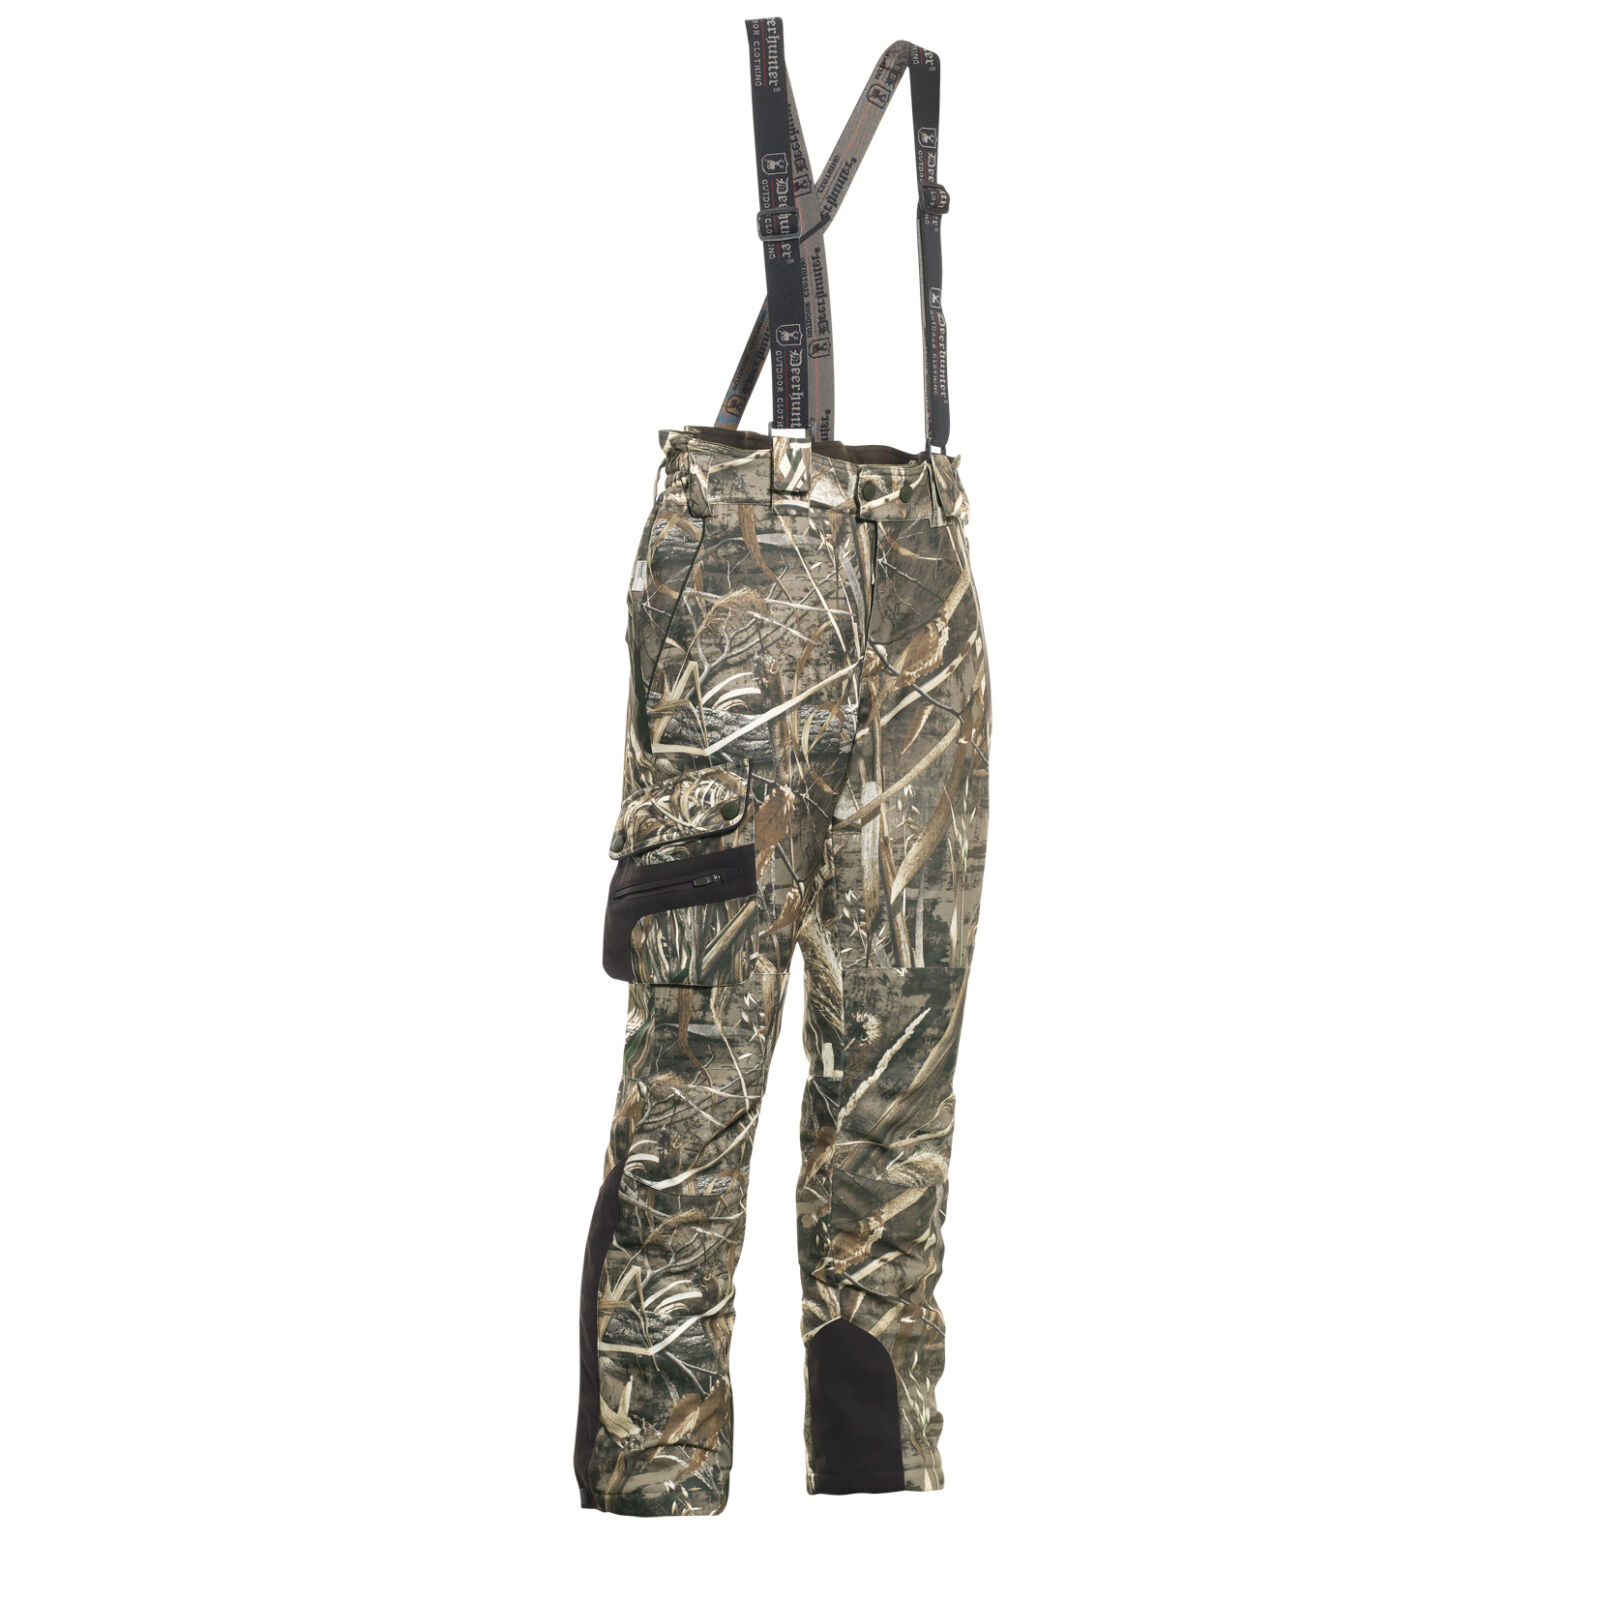 MUFLON Jagdhose m Thins. für Winter Camouflage 95-MAX 5 Realtree DEERHUNTER 3822